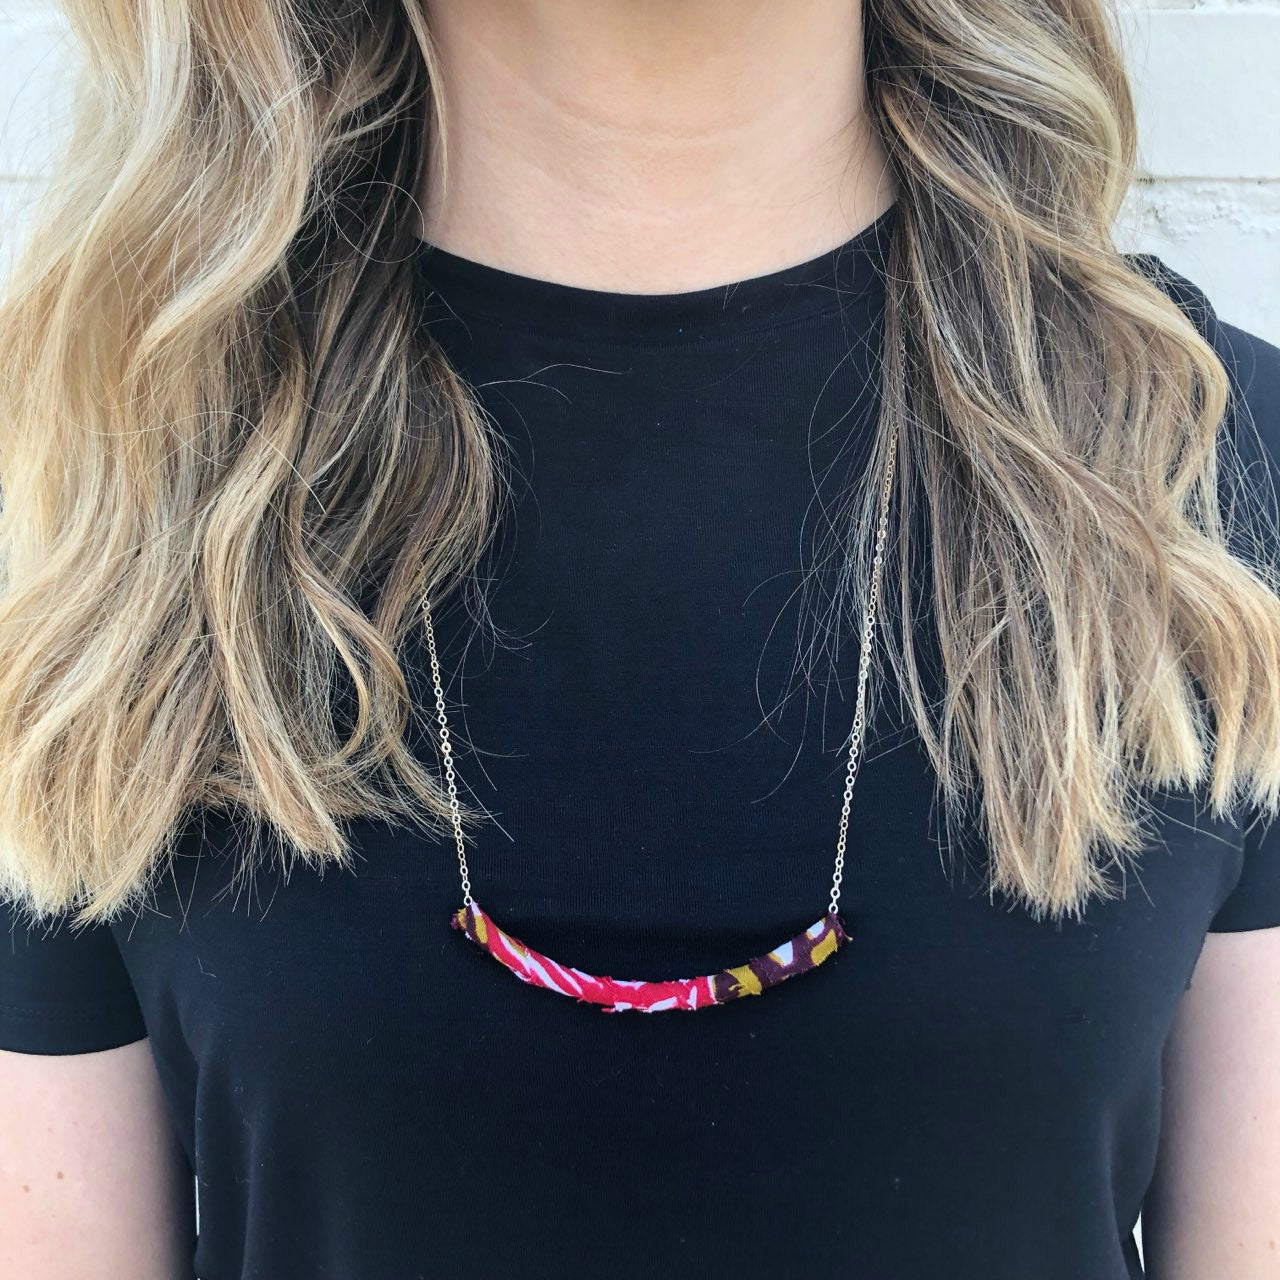 Moon and Lola - Azaza Slide in Pink on Apex Chain Necklace